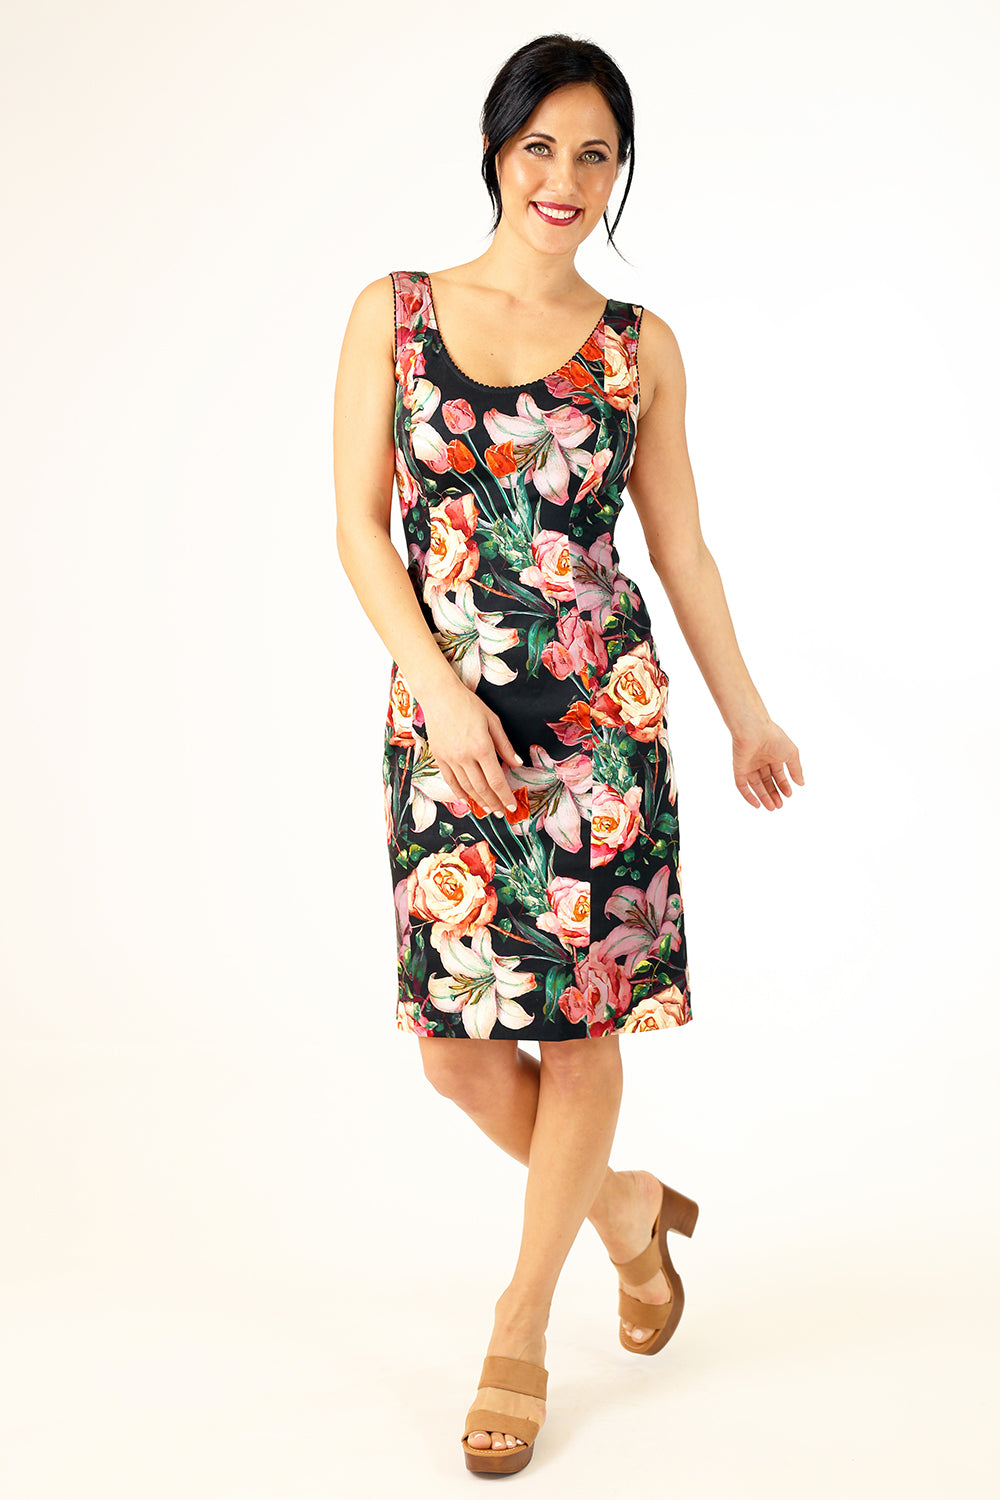 Sorrel Siena Dress - Black Rose